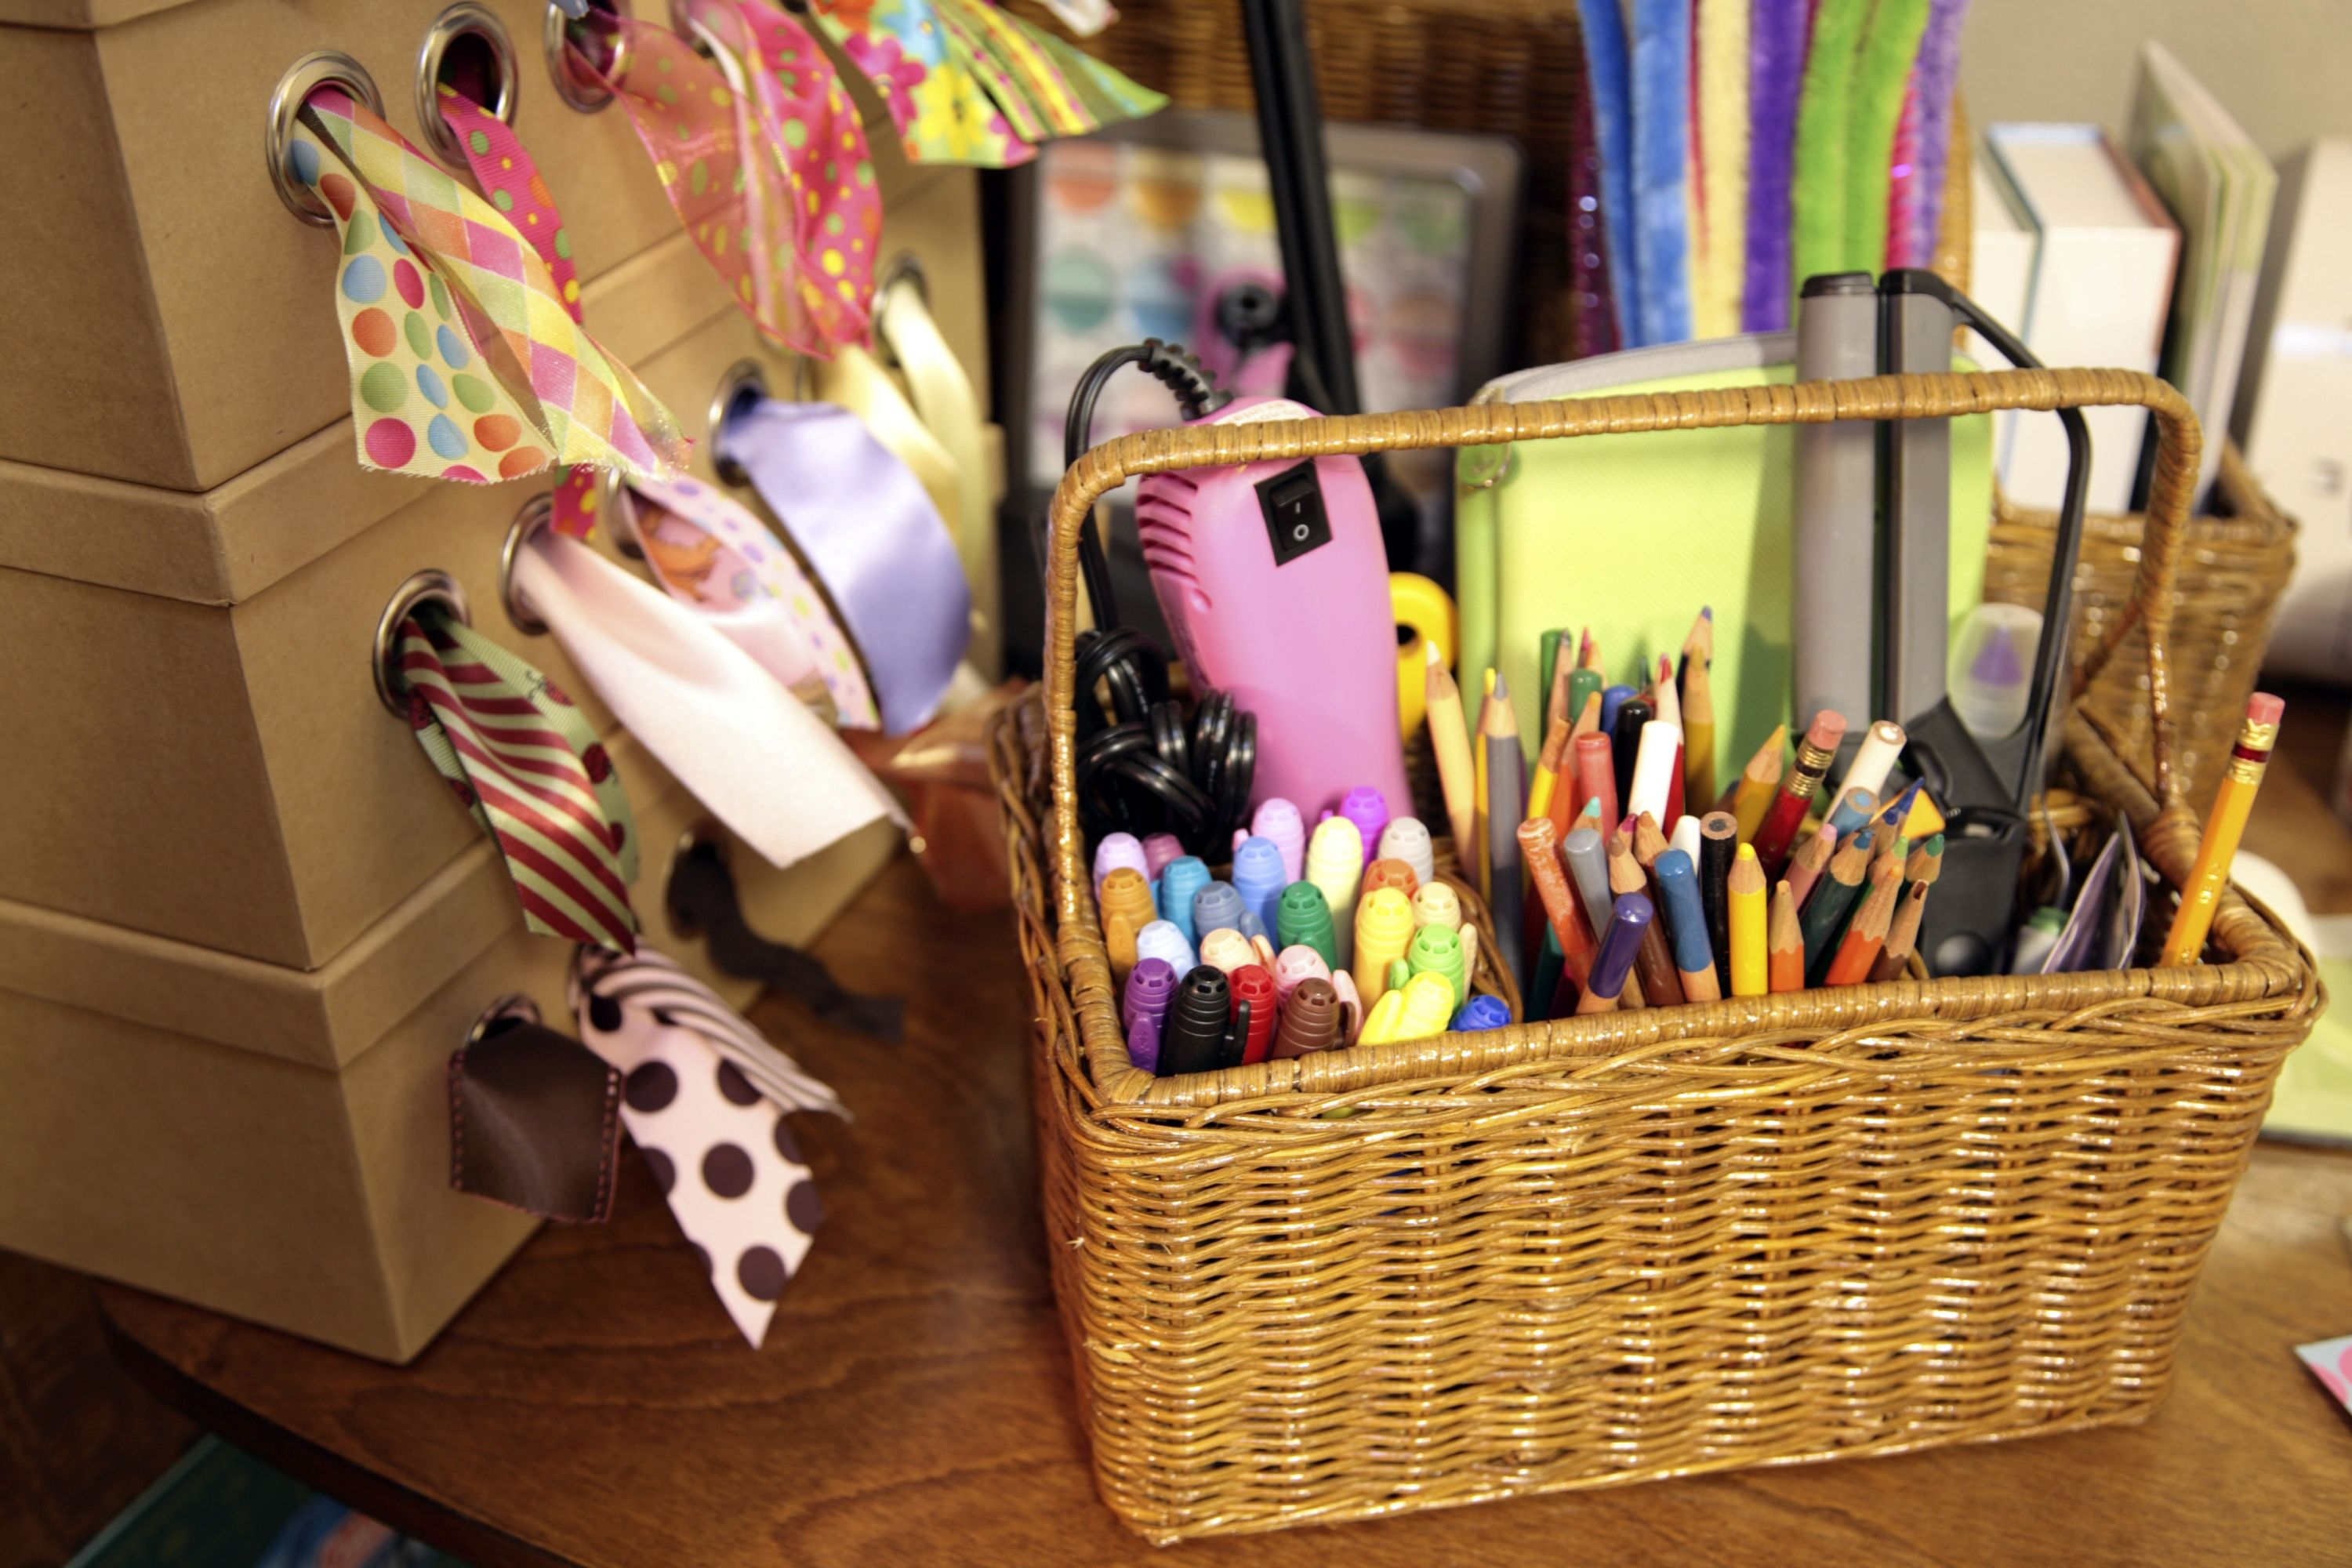 Craft Room Organisation: 7 Steps To Help You Organize Your Craft Room